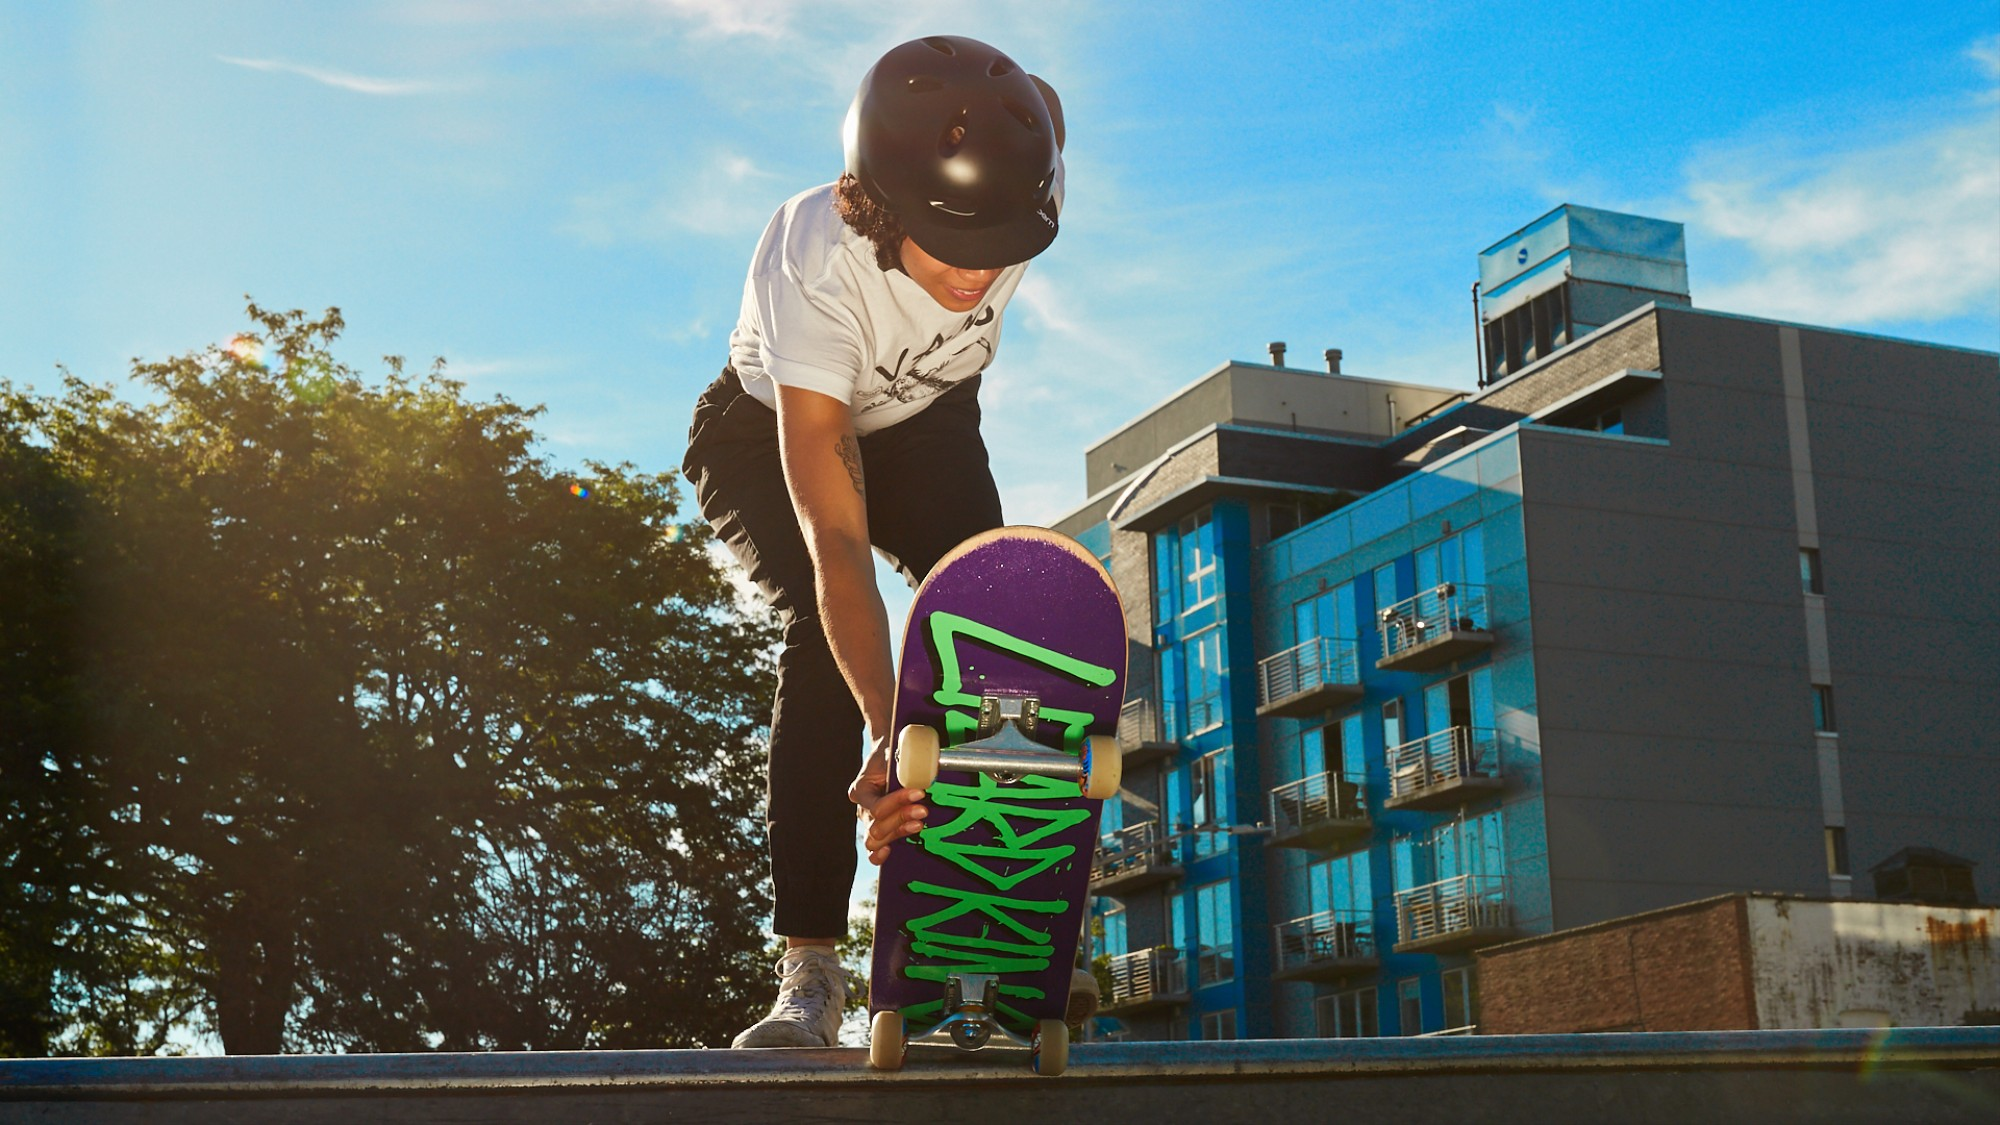 Learning to Skateboard When You're an Adult Is Extremely